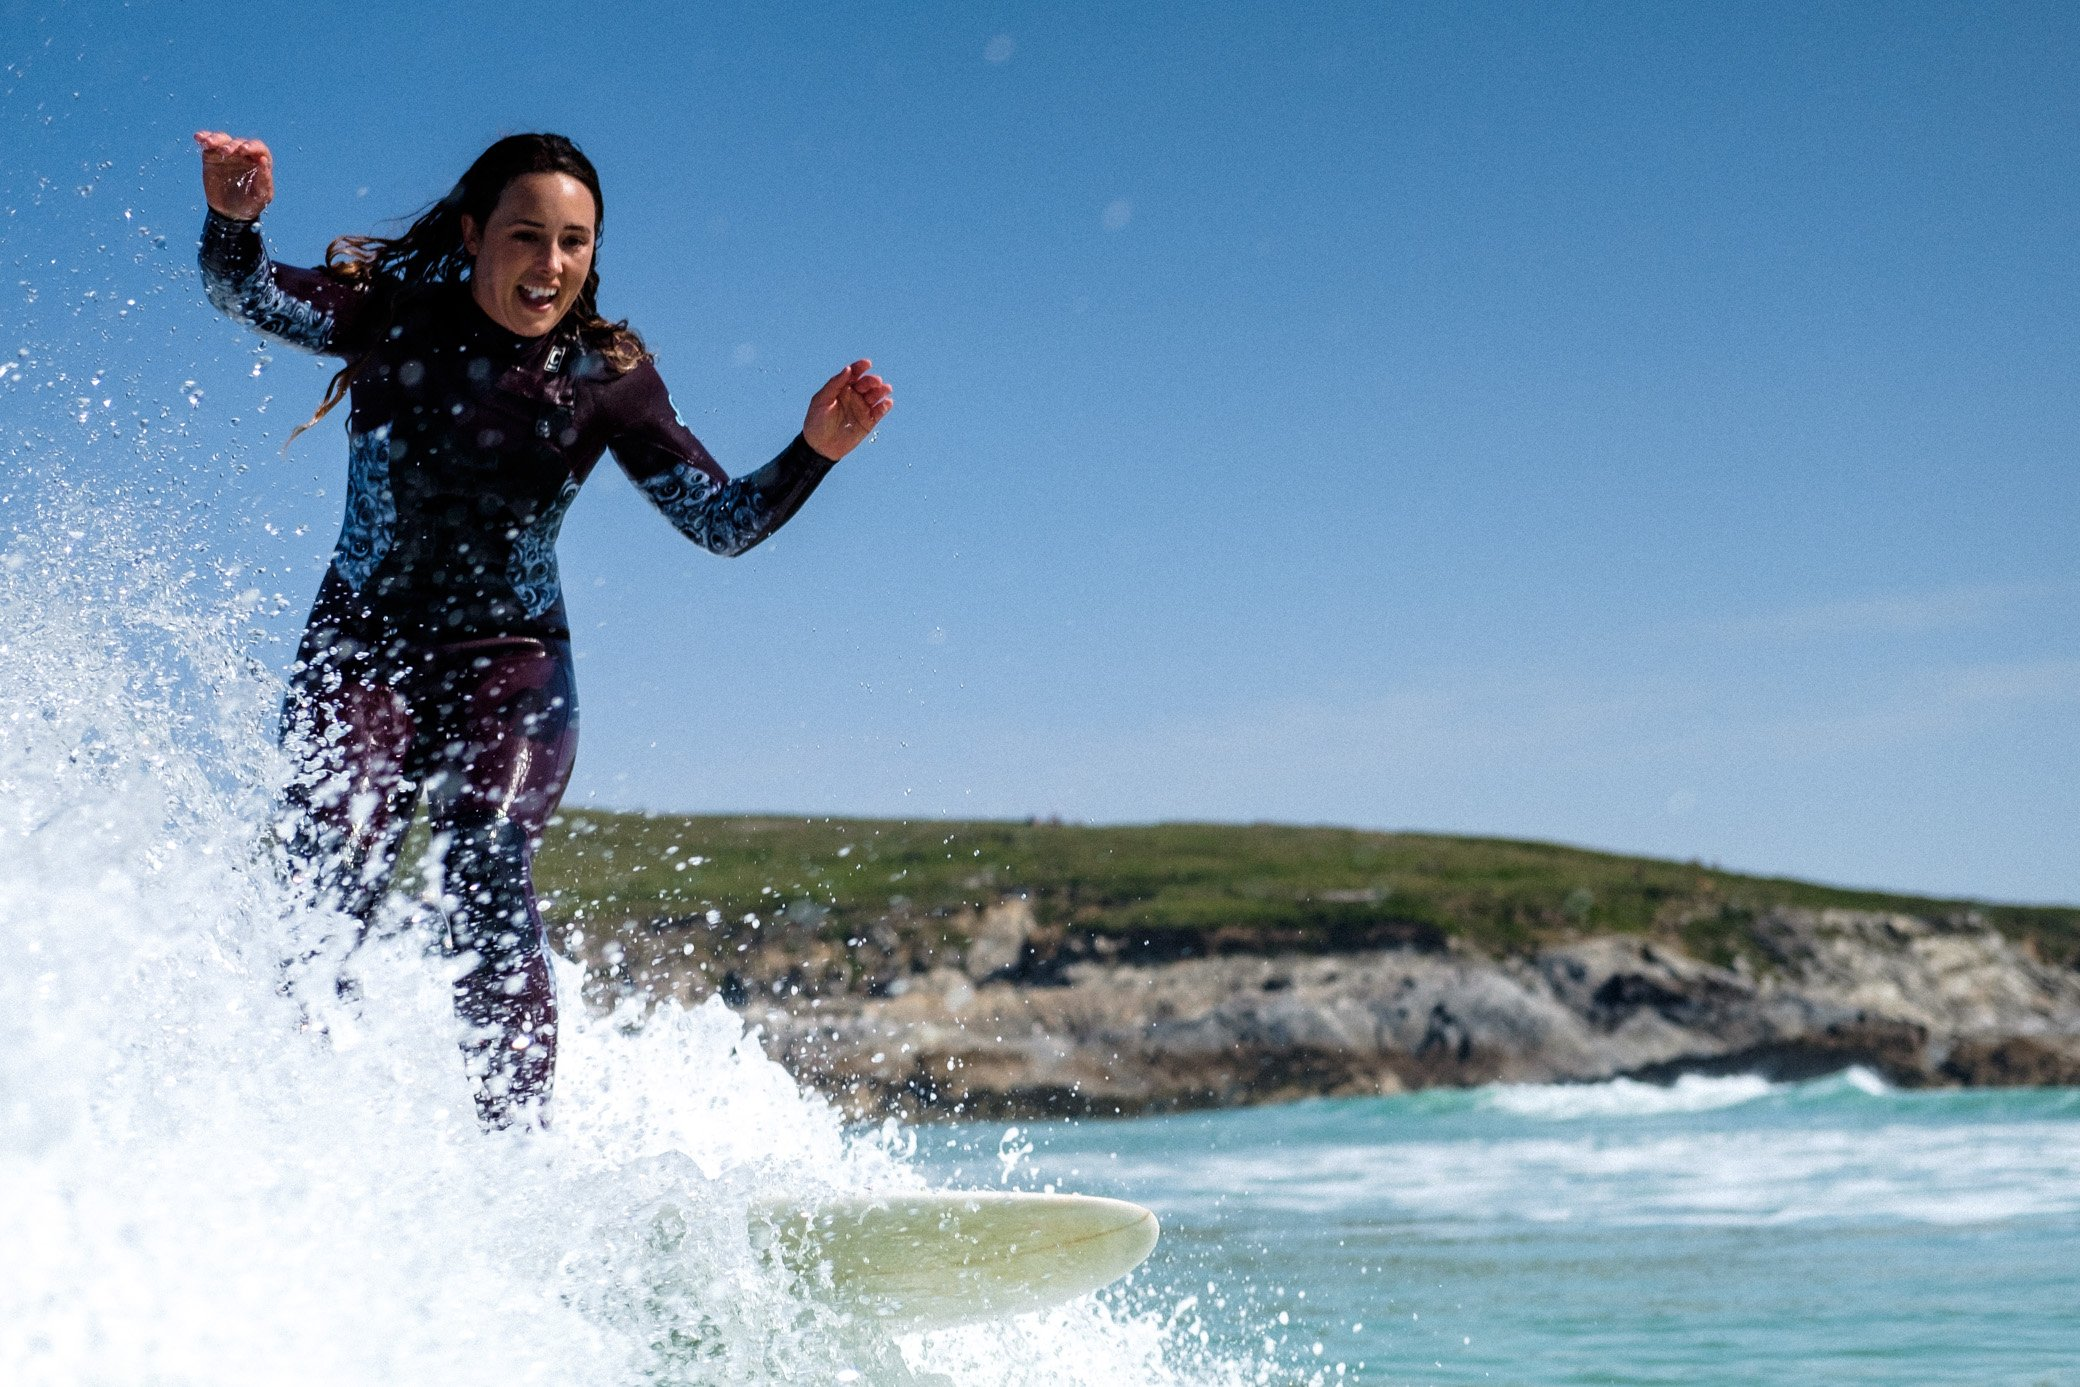 A stoked Corinne Evans at Little Fistral